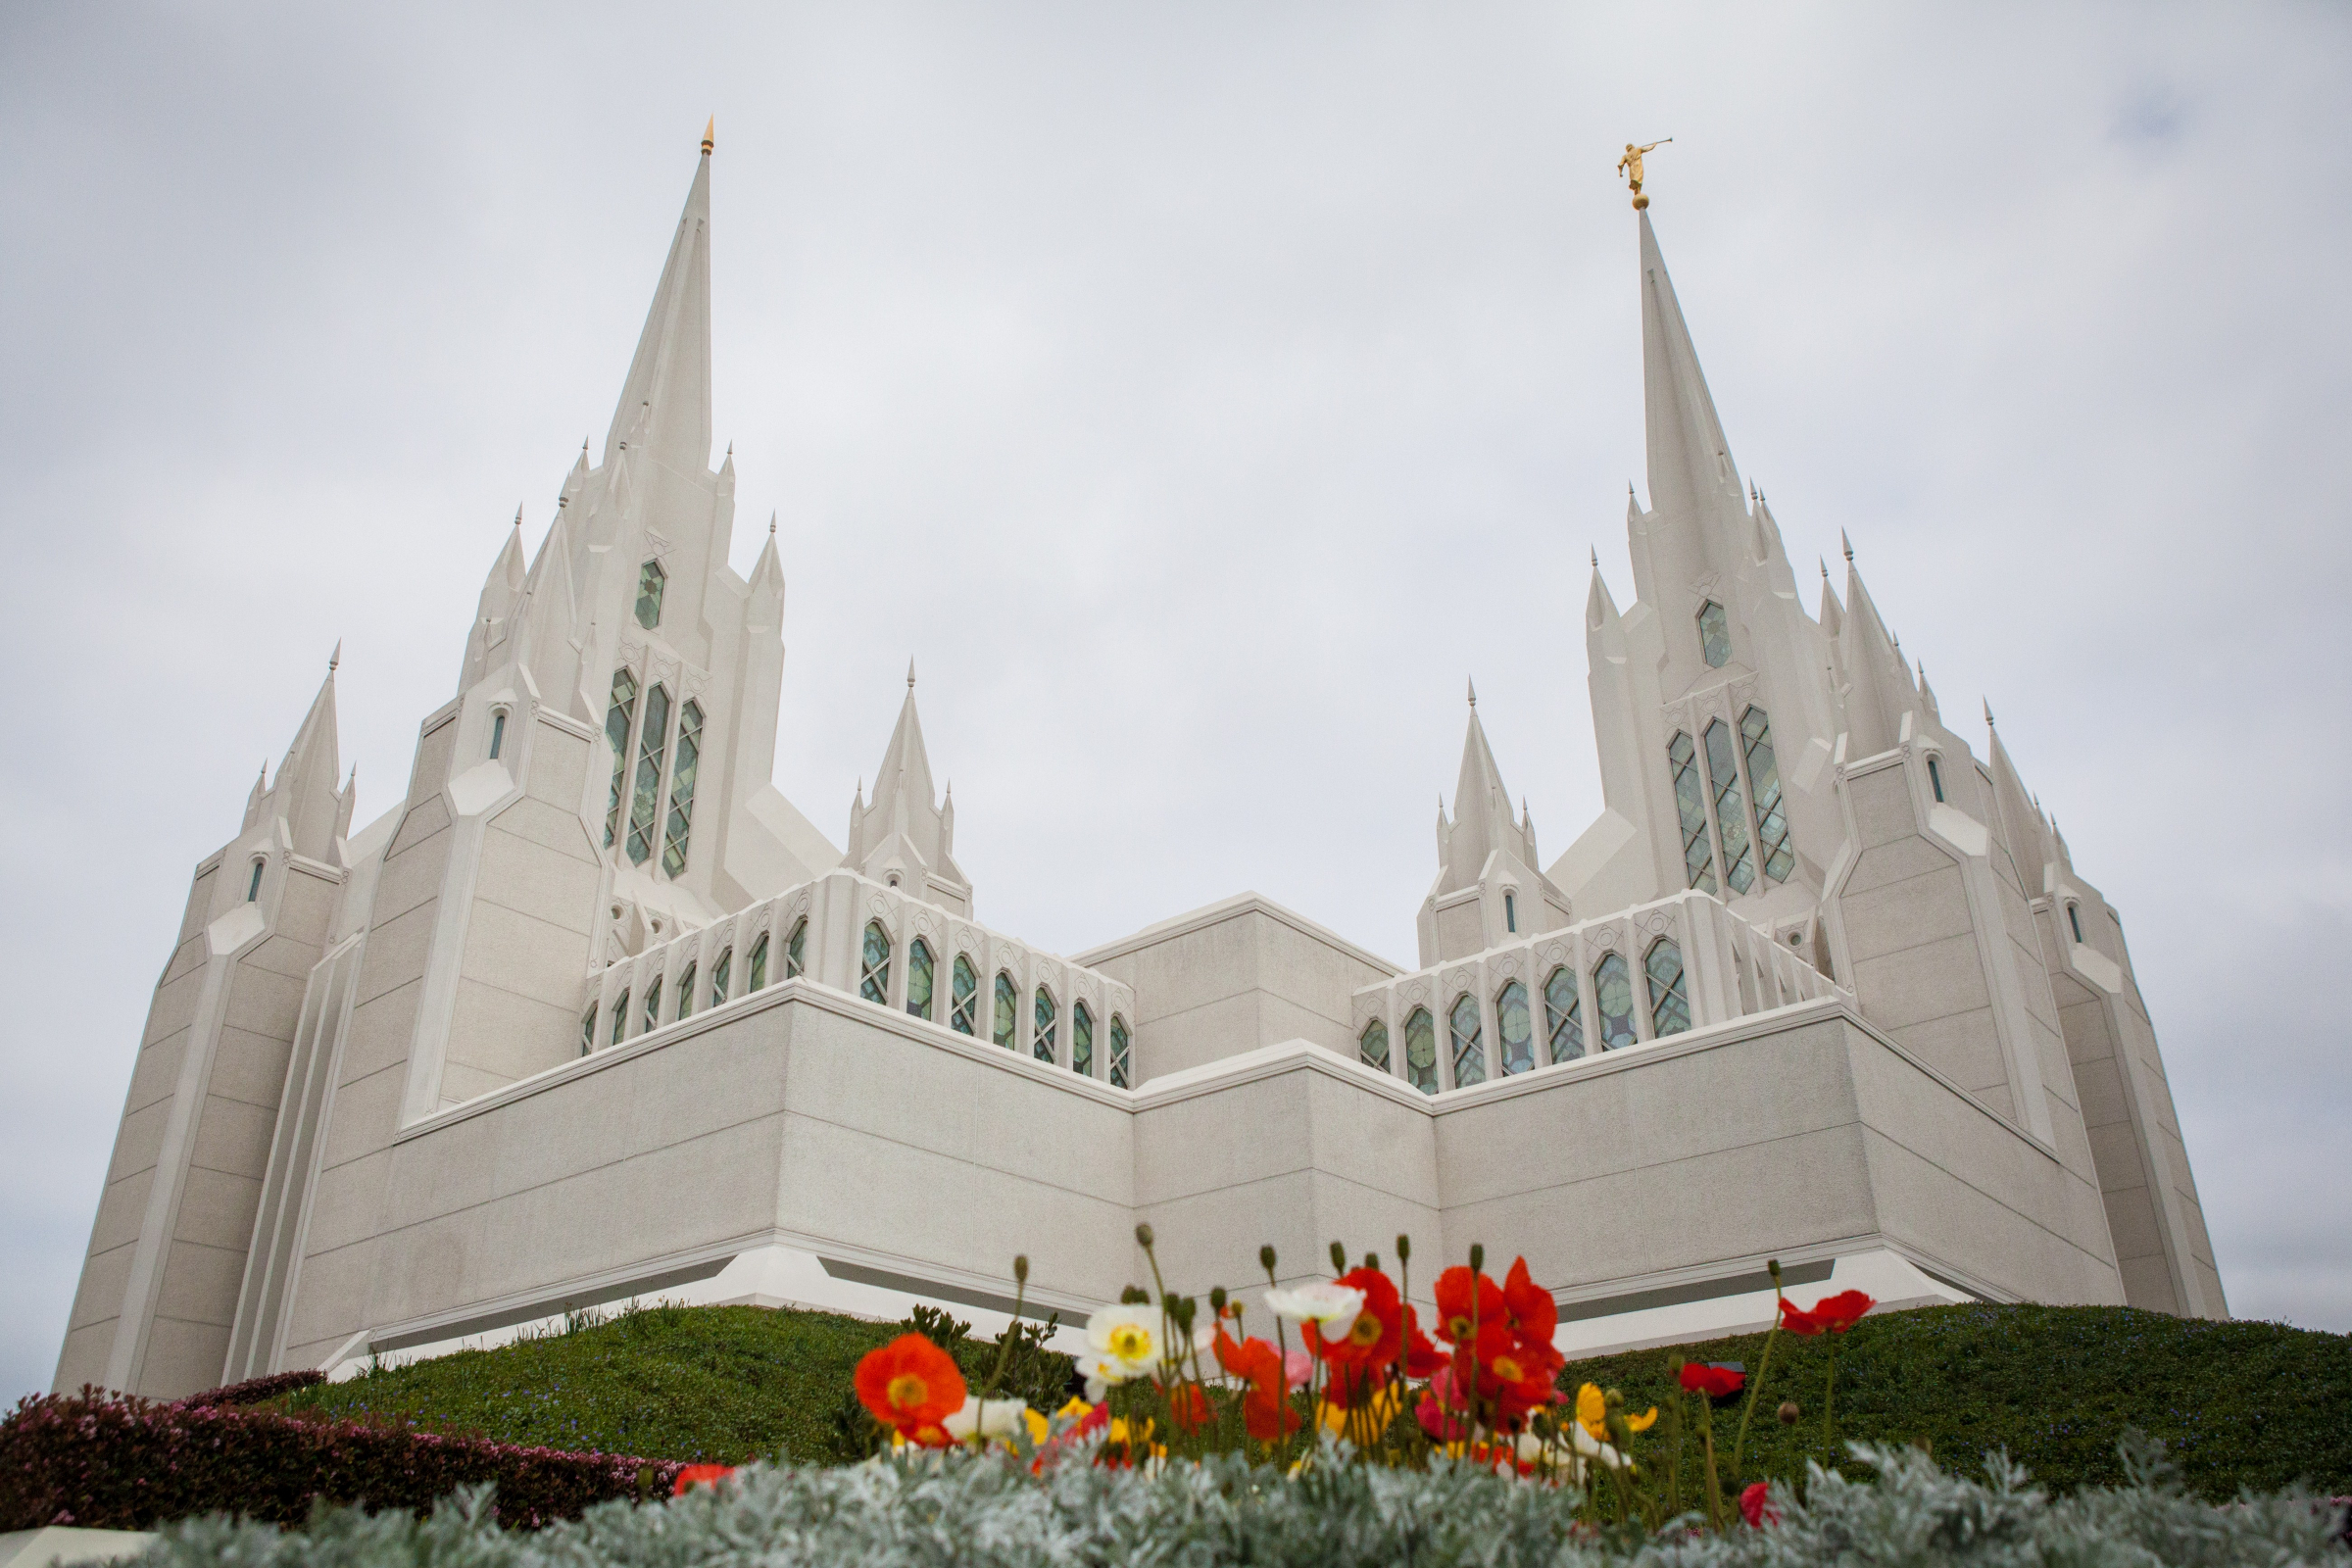 San diego california temple - Lds temple wallpaper ...